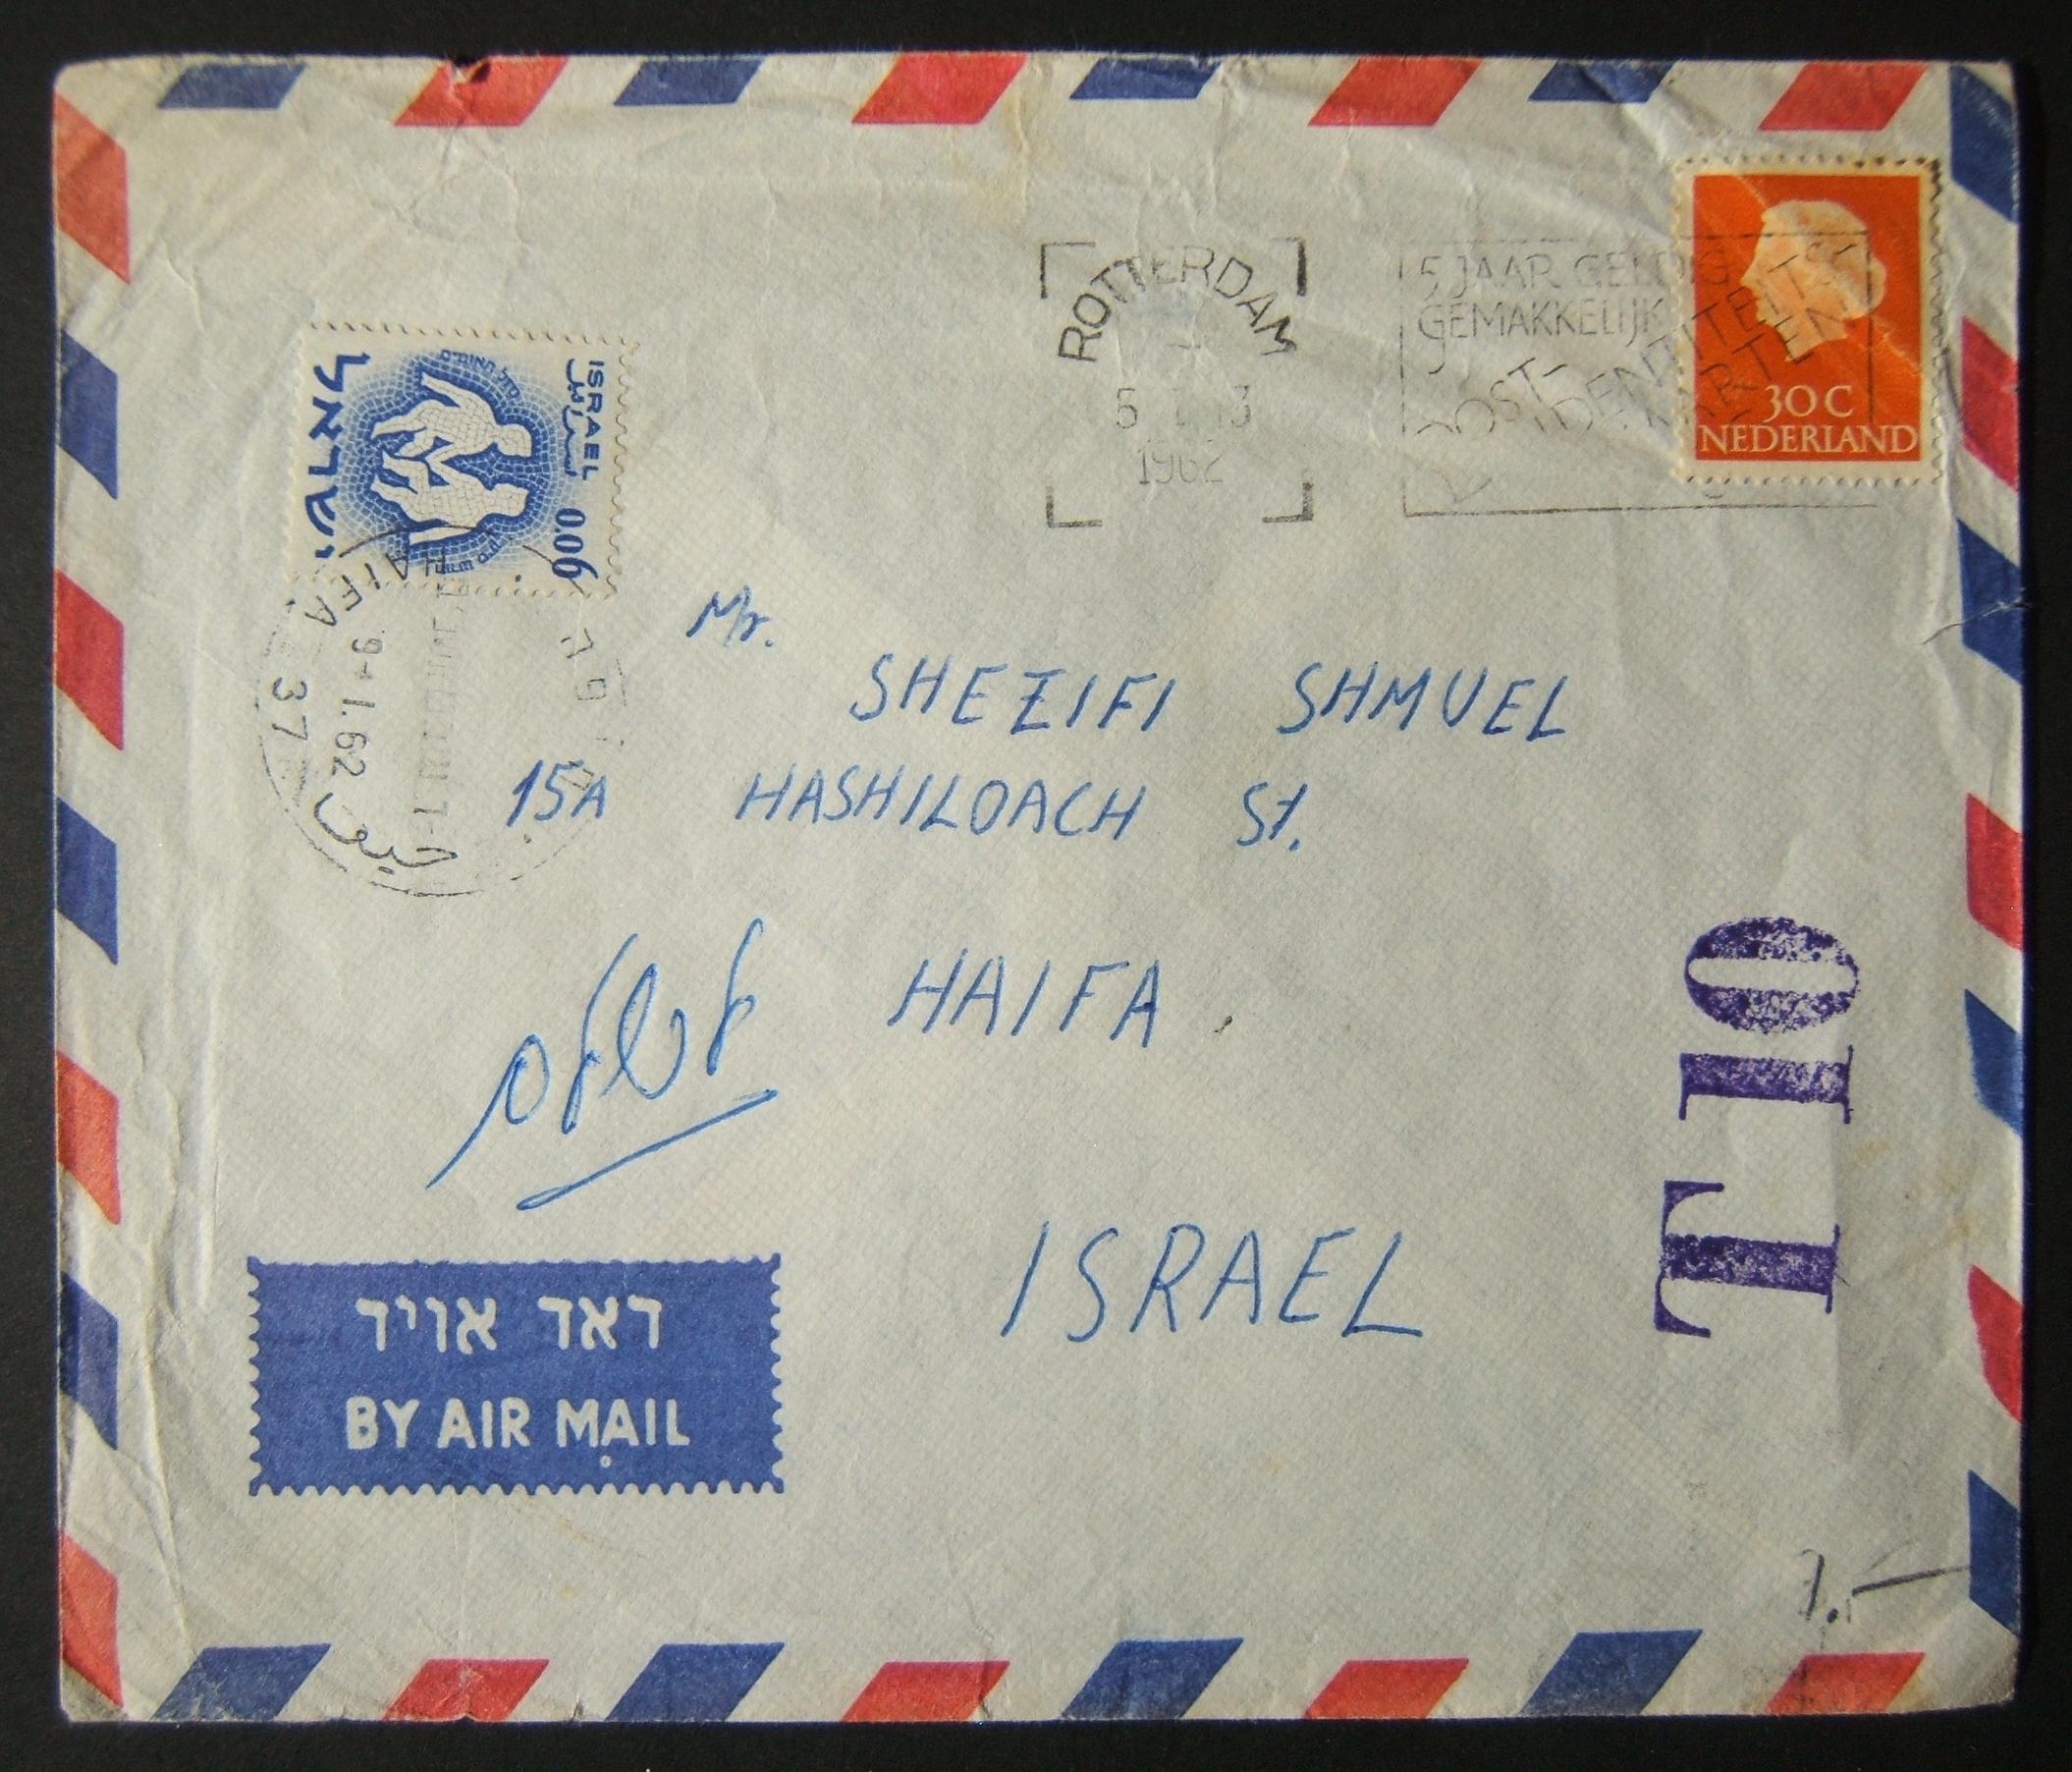 1962 incoming Dutch taxed mail: 5-1-62 Israeli airmail stationary cover ex ROTTERDAM to HAIFA underfranked at 30C and taxed 0.06L in Israel (manuscript notation), paid 9-1-62 using